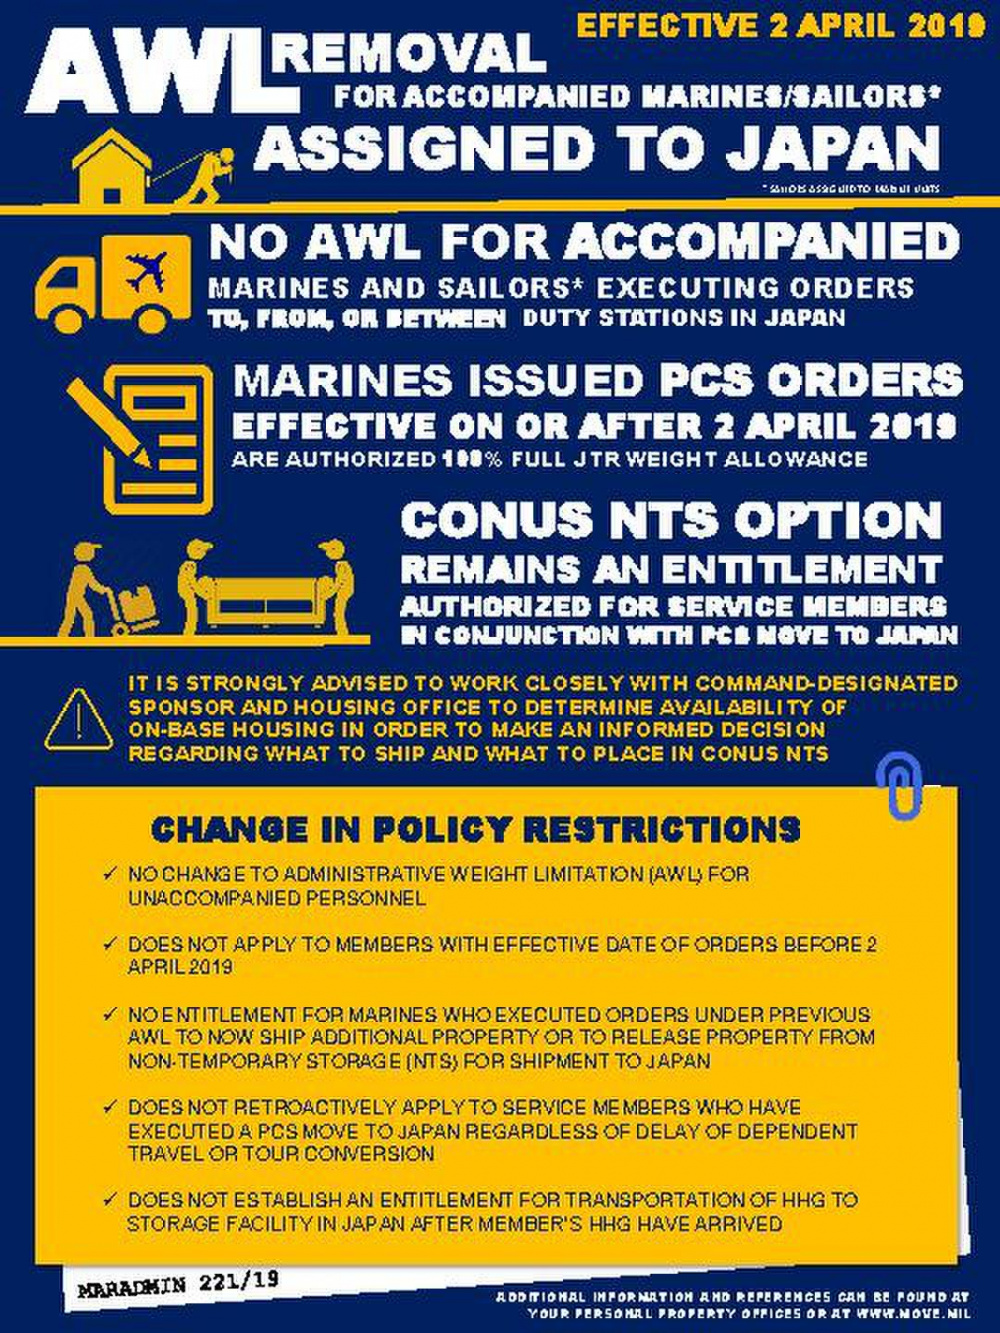 Infographic: Administrative Weight Limitation Removal for accompanied Marines and Sailors assigned to Japan